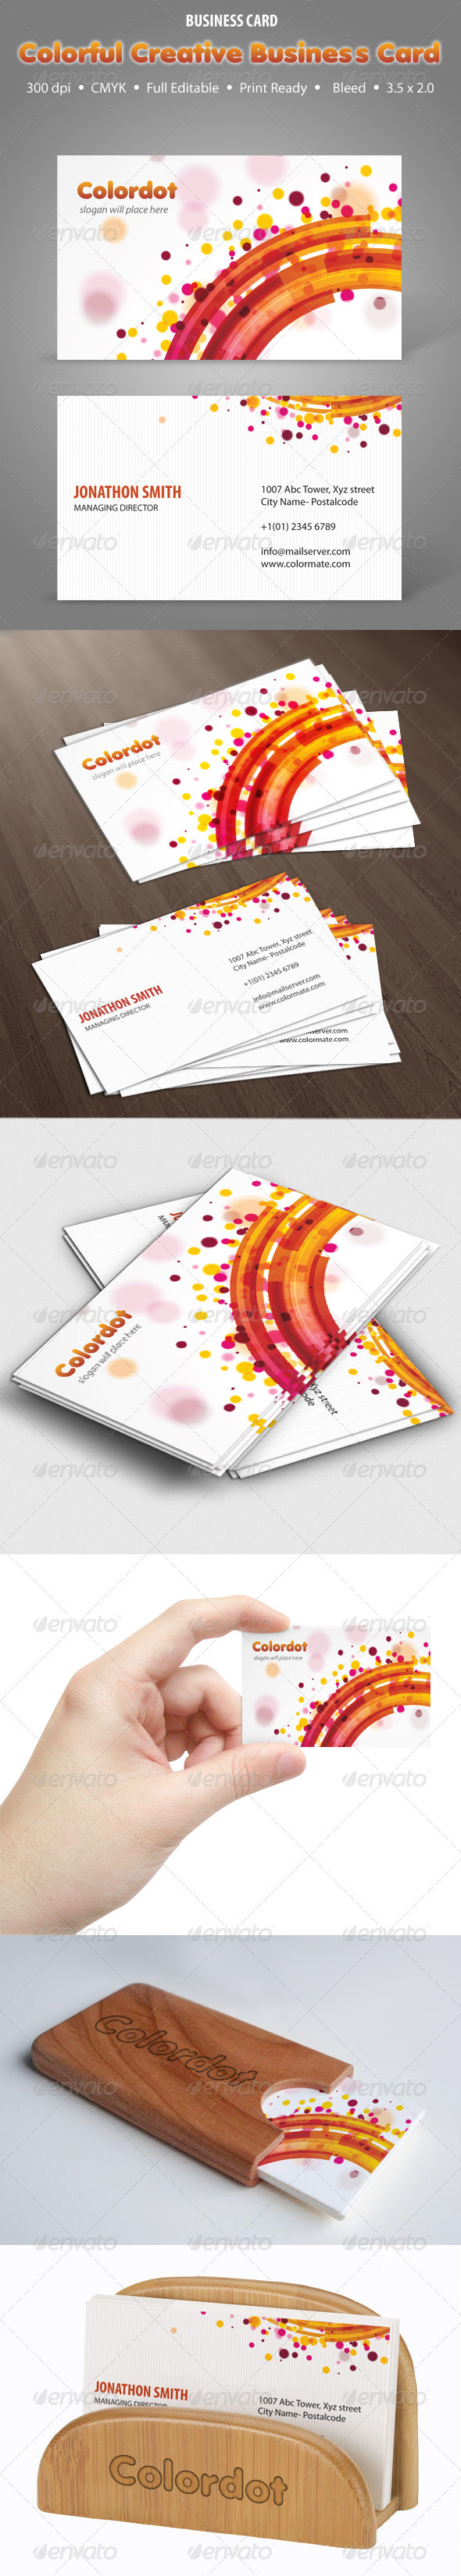 GraphicRiver Colordot Creative Business Card 3865639